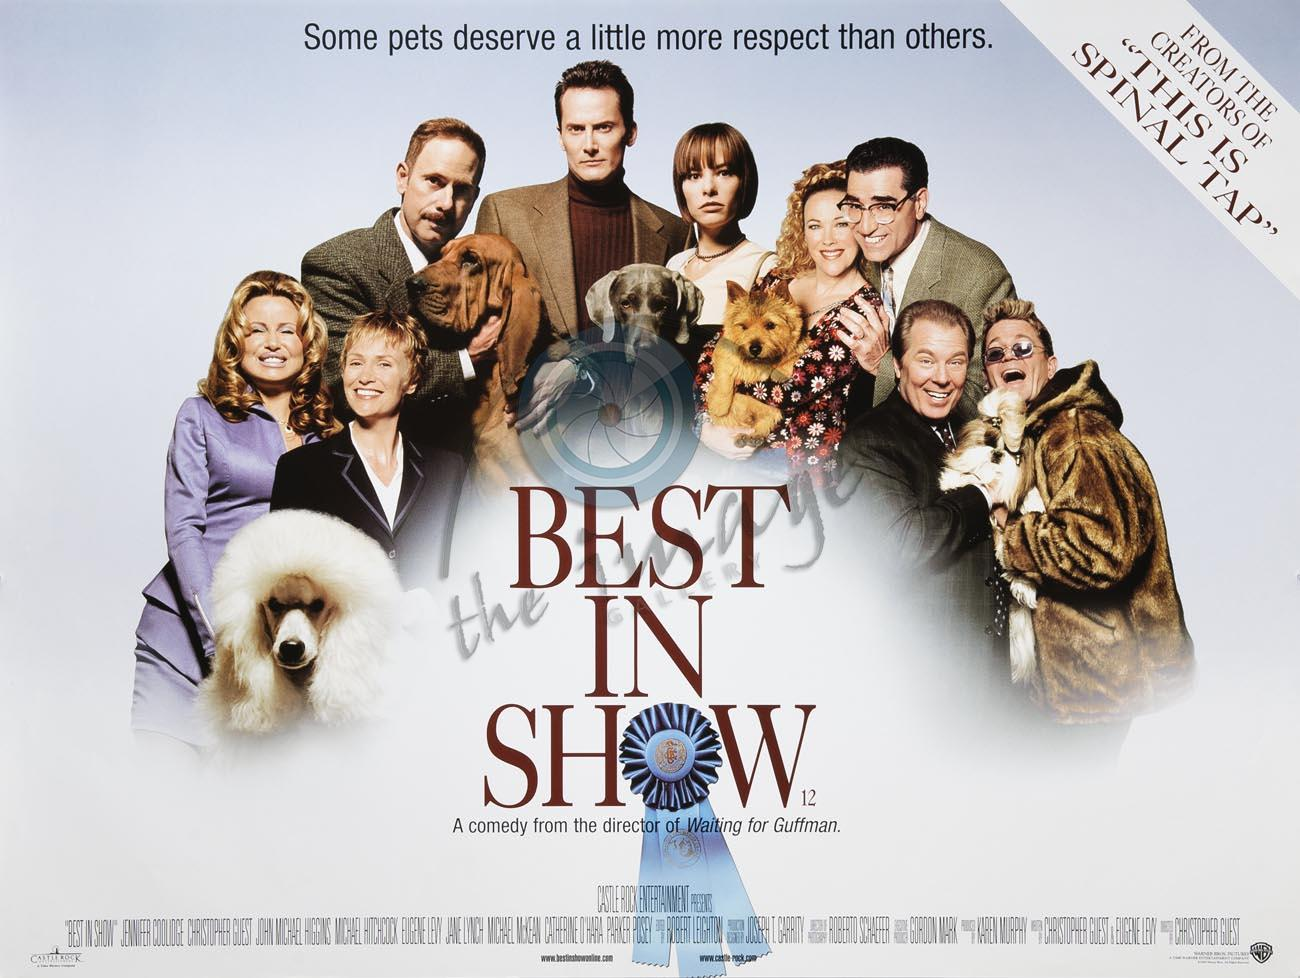 Best in Show movie review